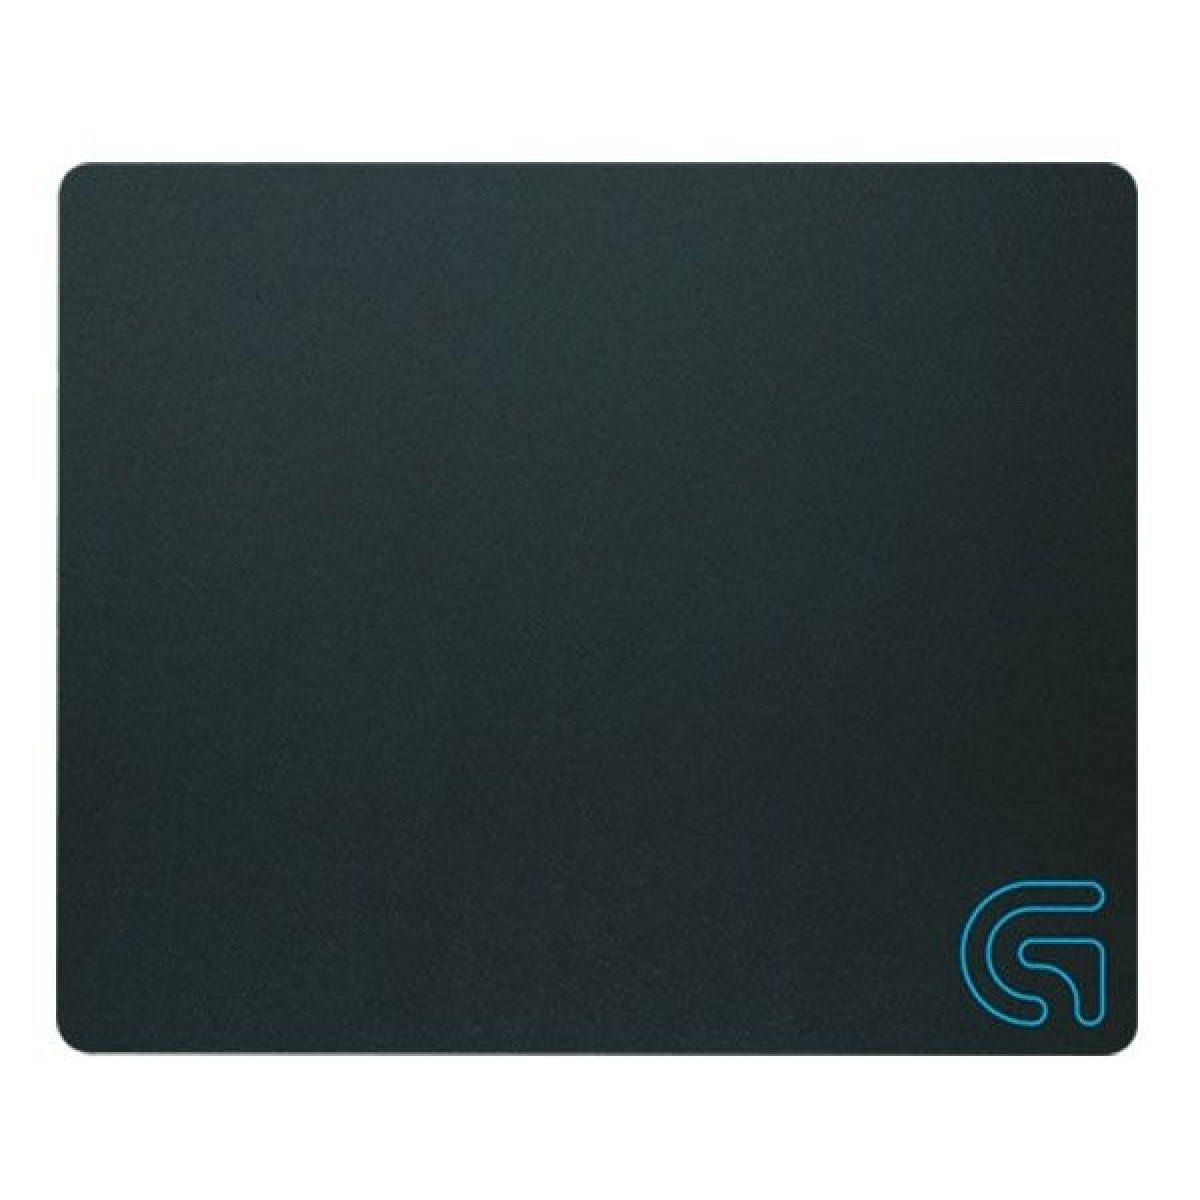 Mousepad Gamer Logitech G440 Hard 943-000098